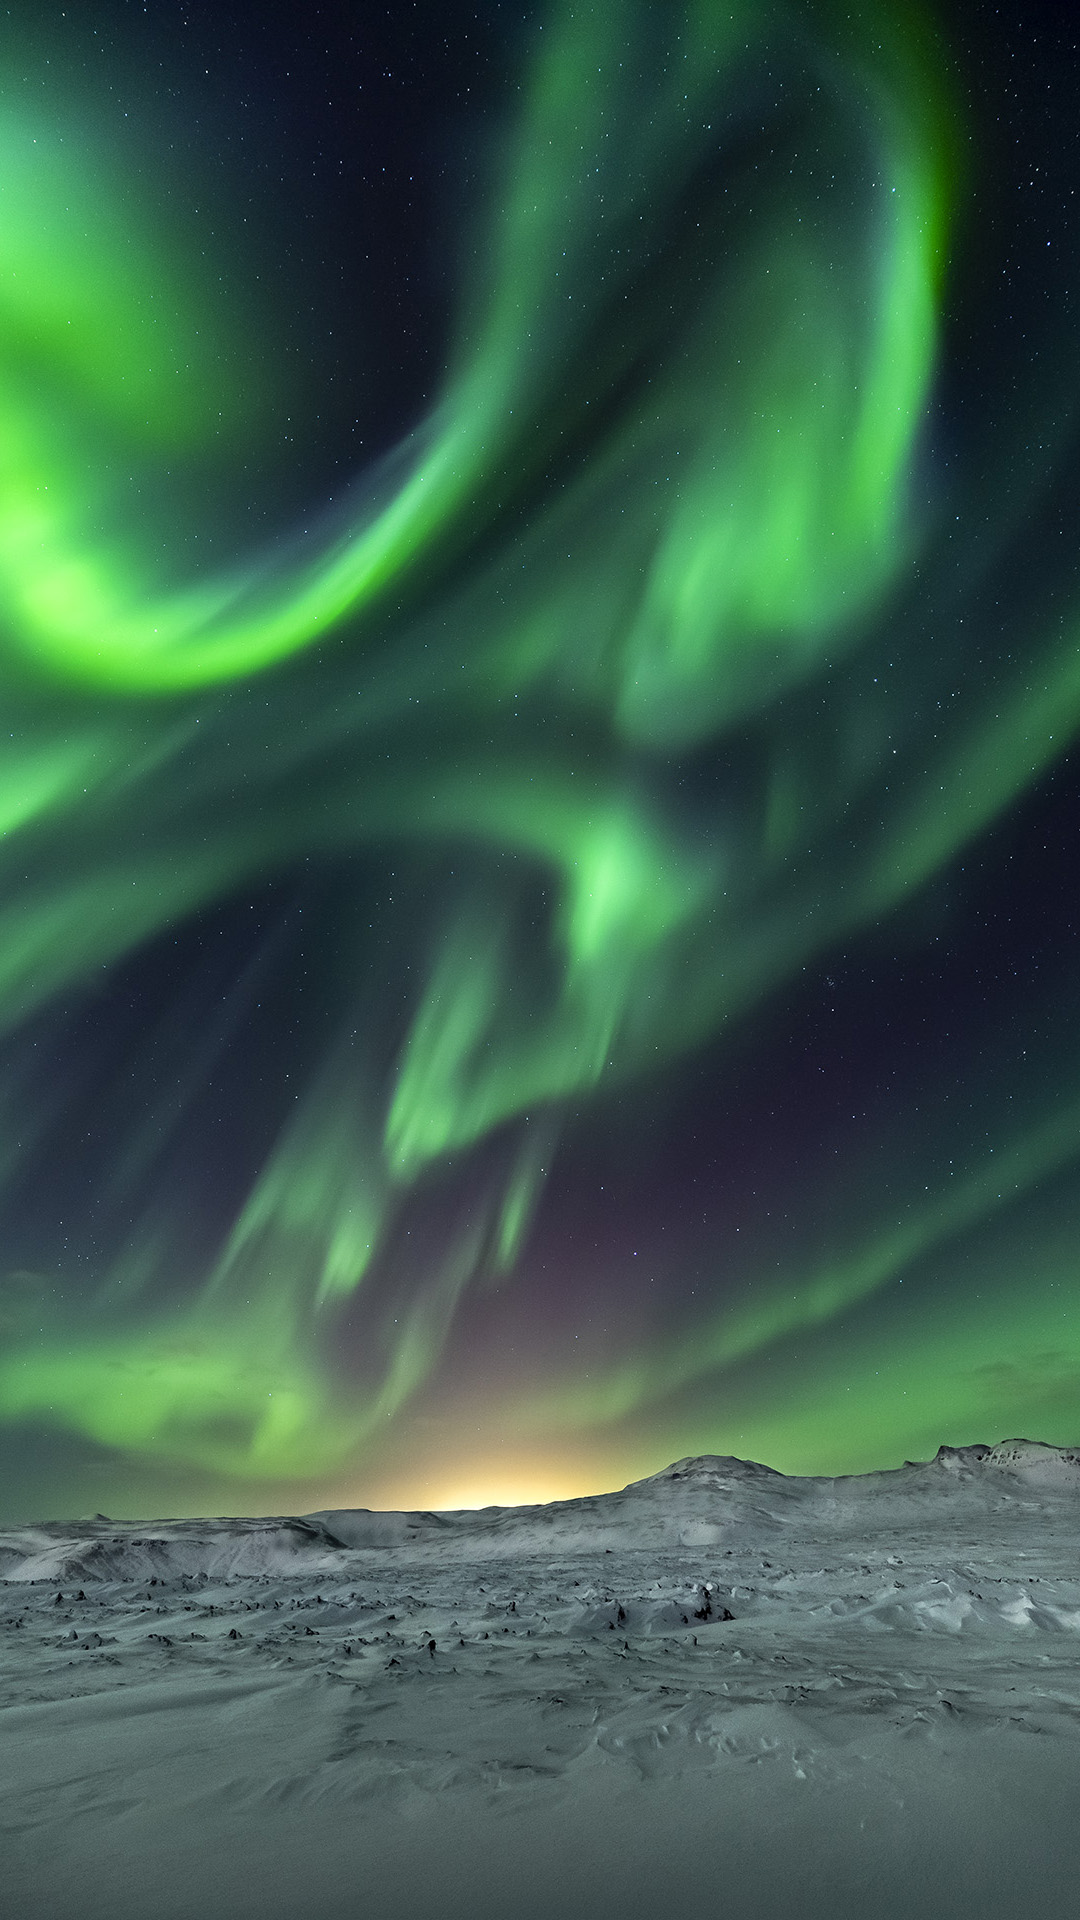 Northern Lights at Bláfjöll